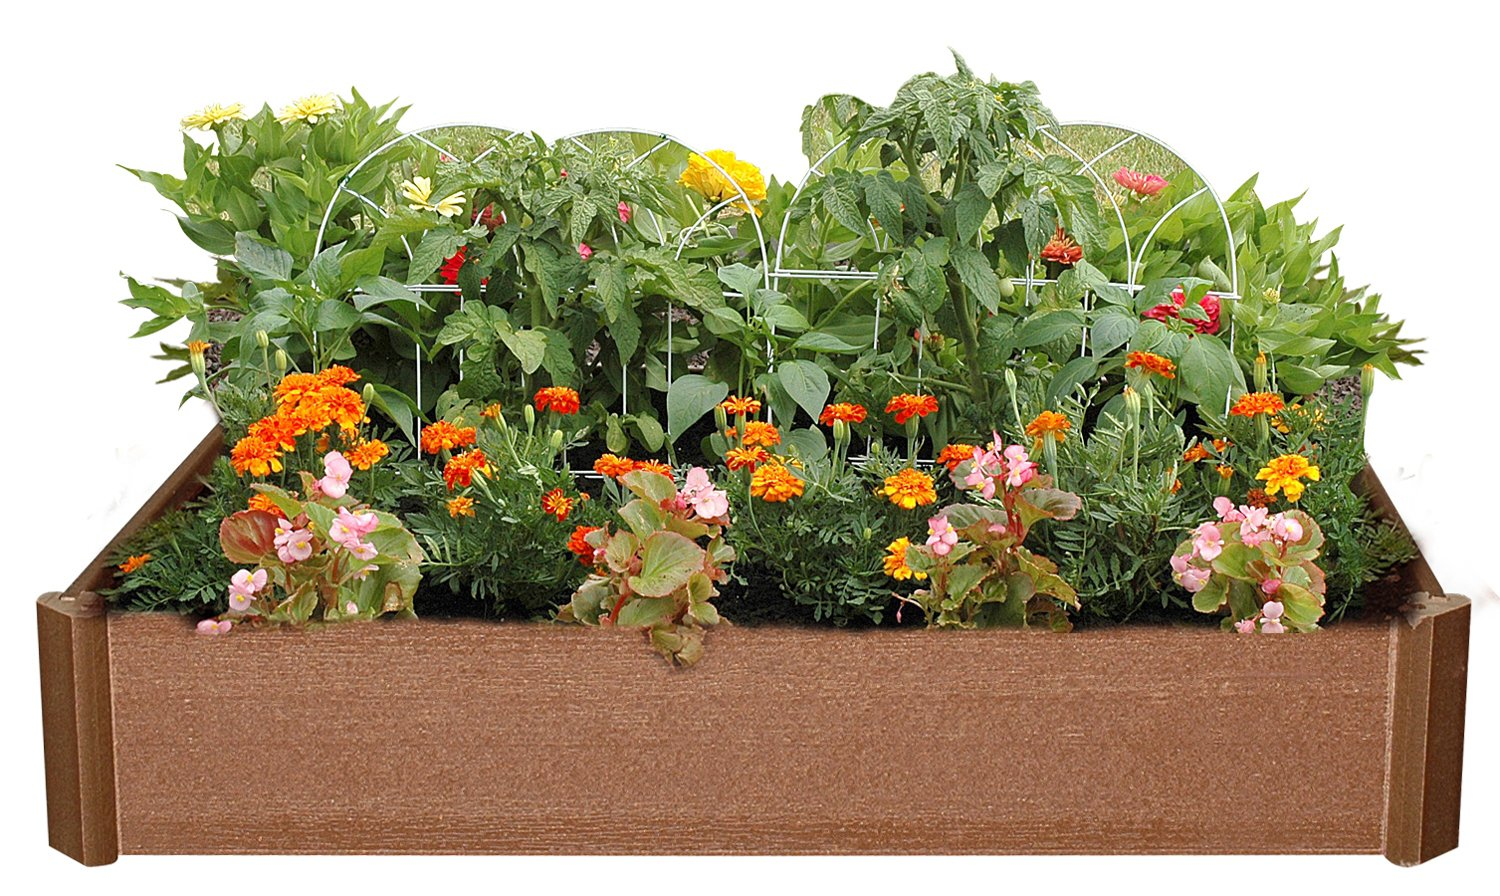 Amazon.com : Greenland Gardener 6 Inch Raised Bed Garden Kit : Garden U0026  Outdoor